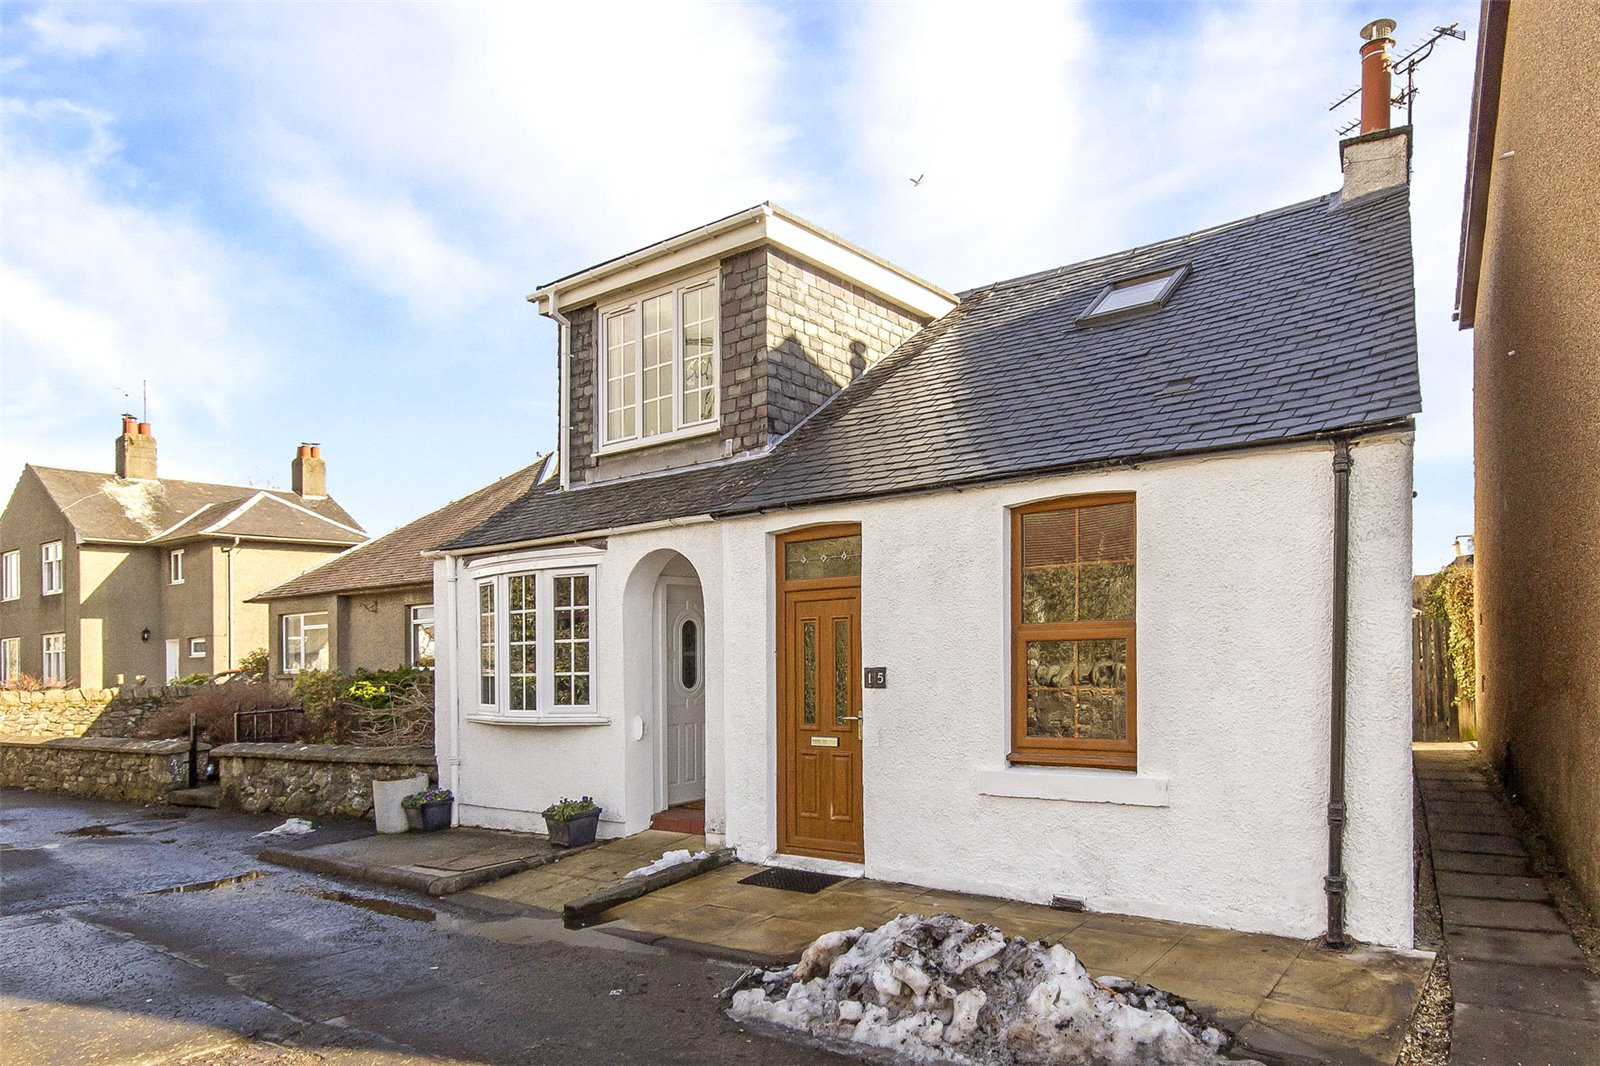 Charming cottage looks fantastic following full refurbishment